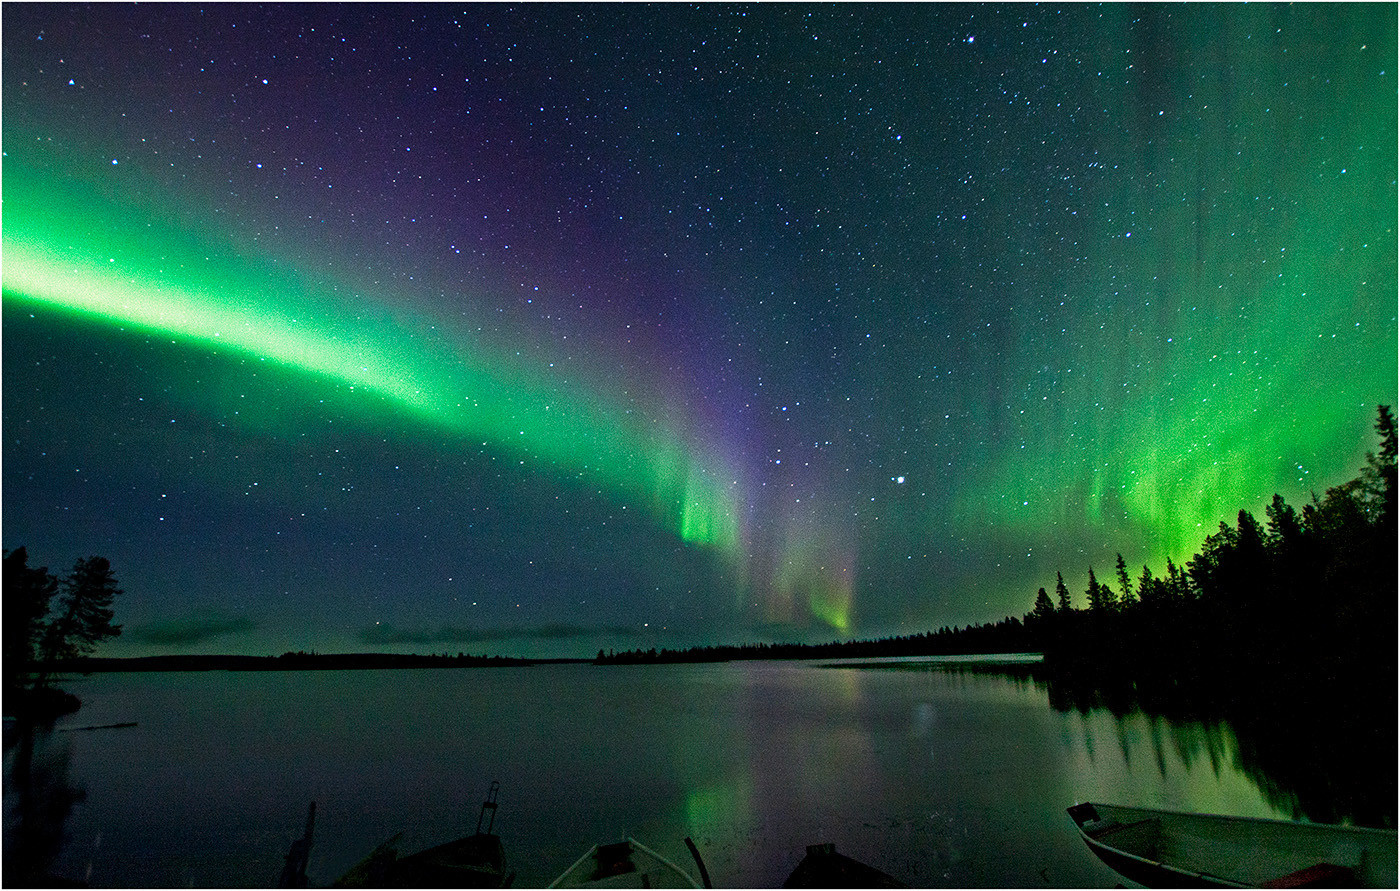 GROUP 2 20 THE AMAZING AURORA BOREALIS by Mike Hart